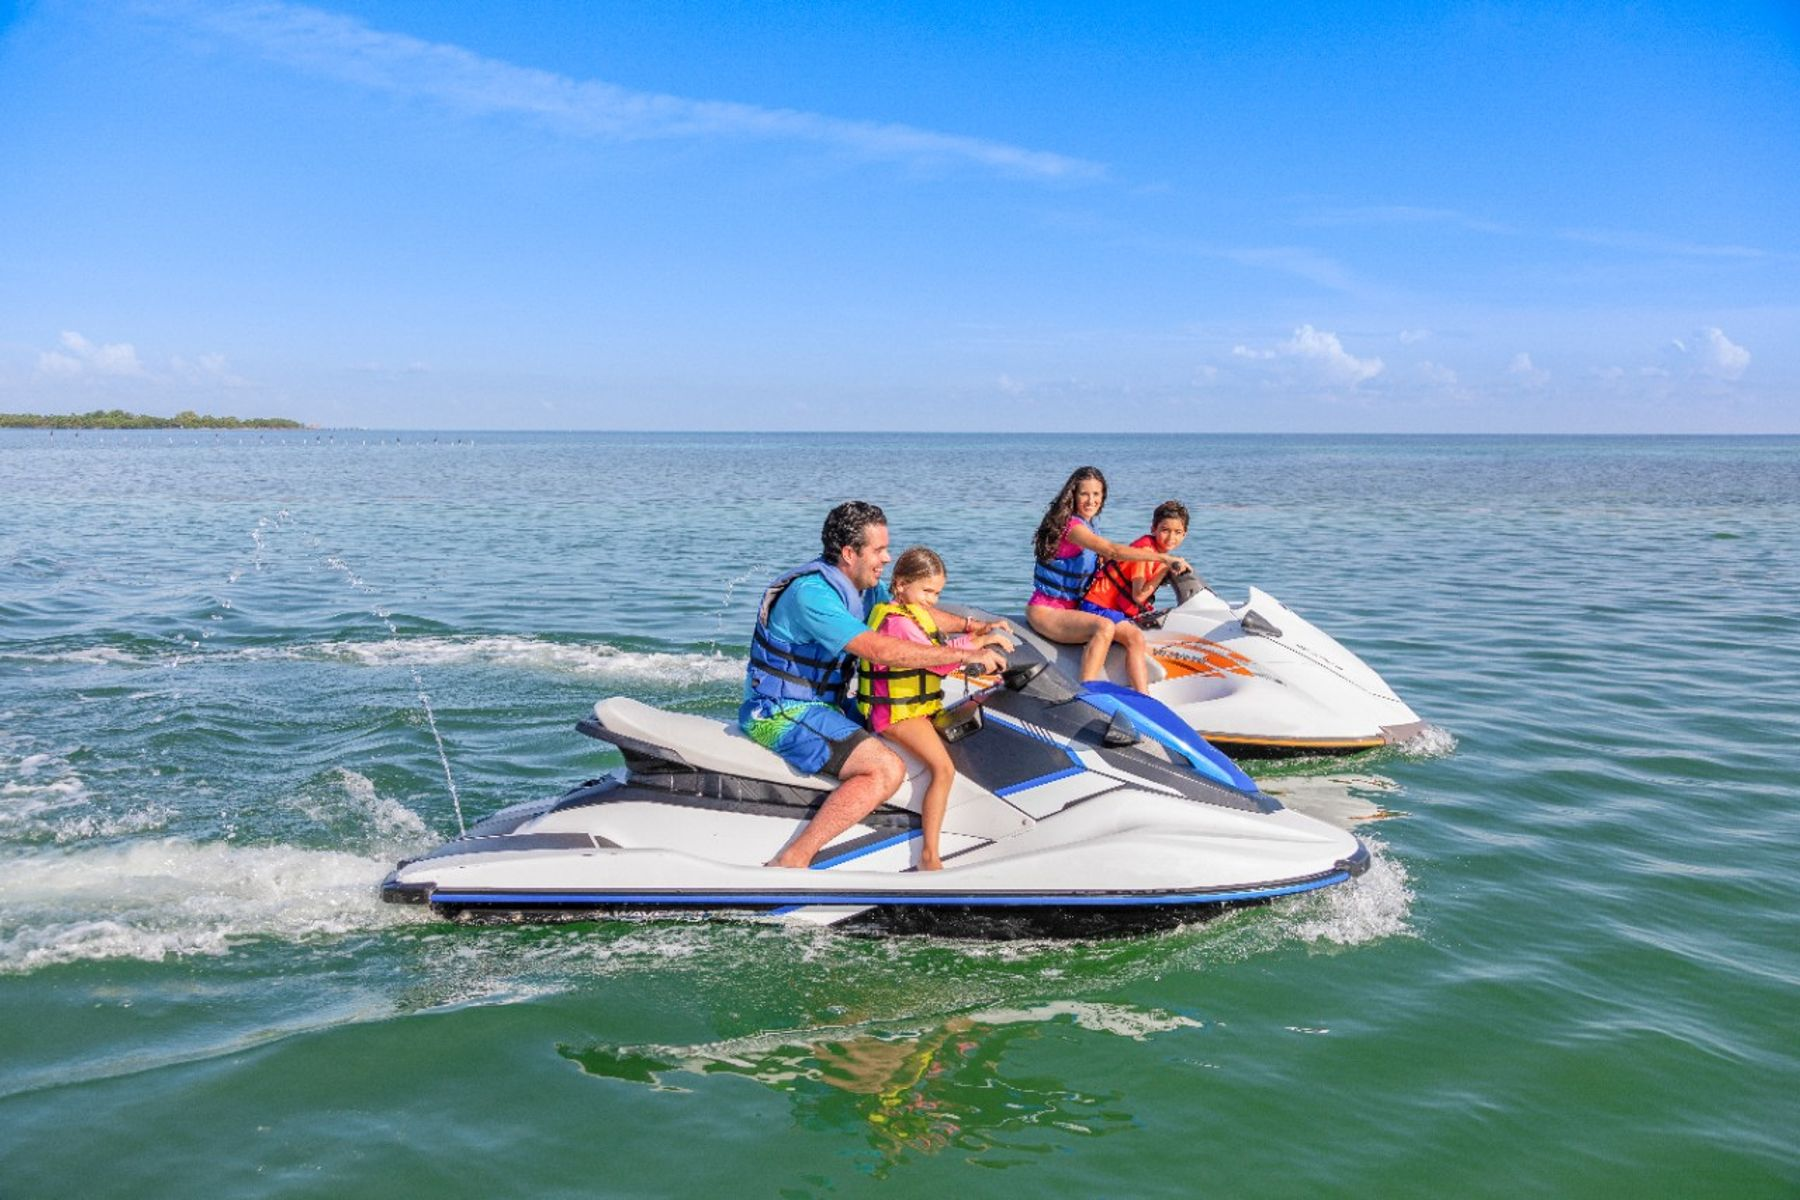 Family on Jetskis outdoor activities in Florida